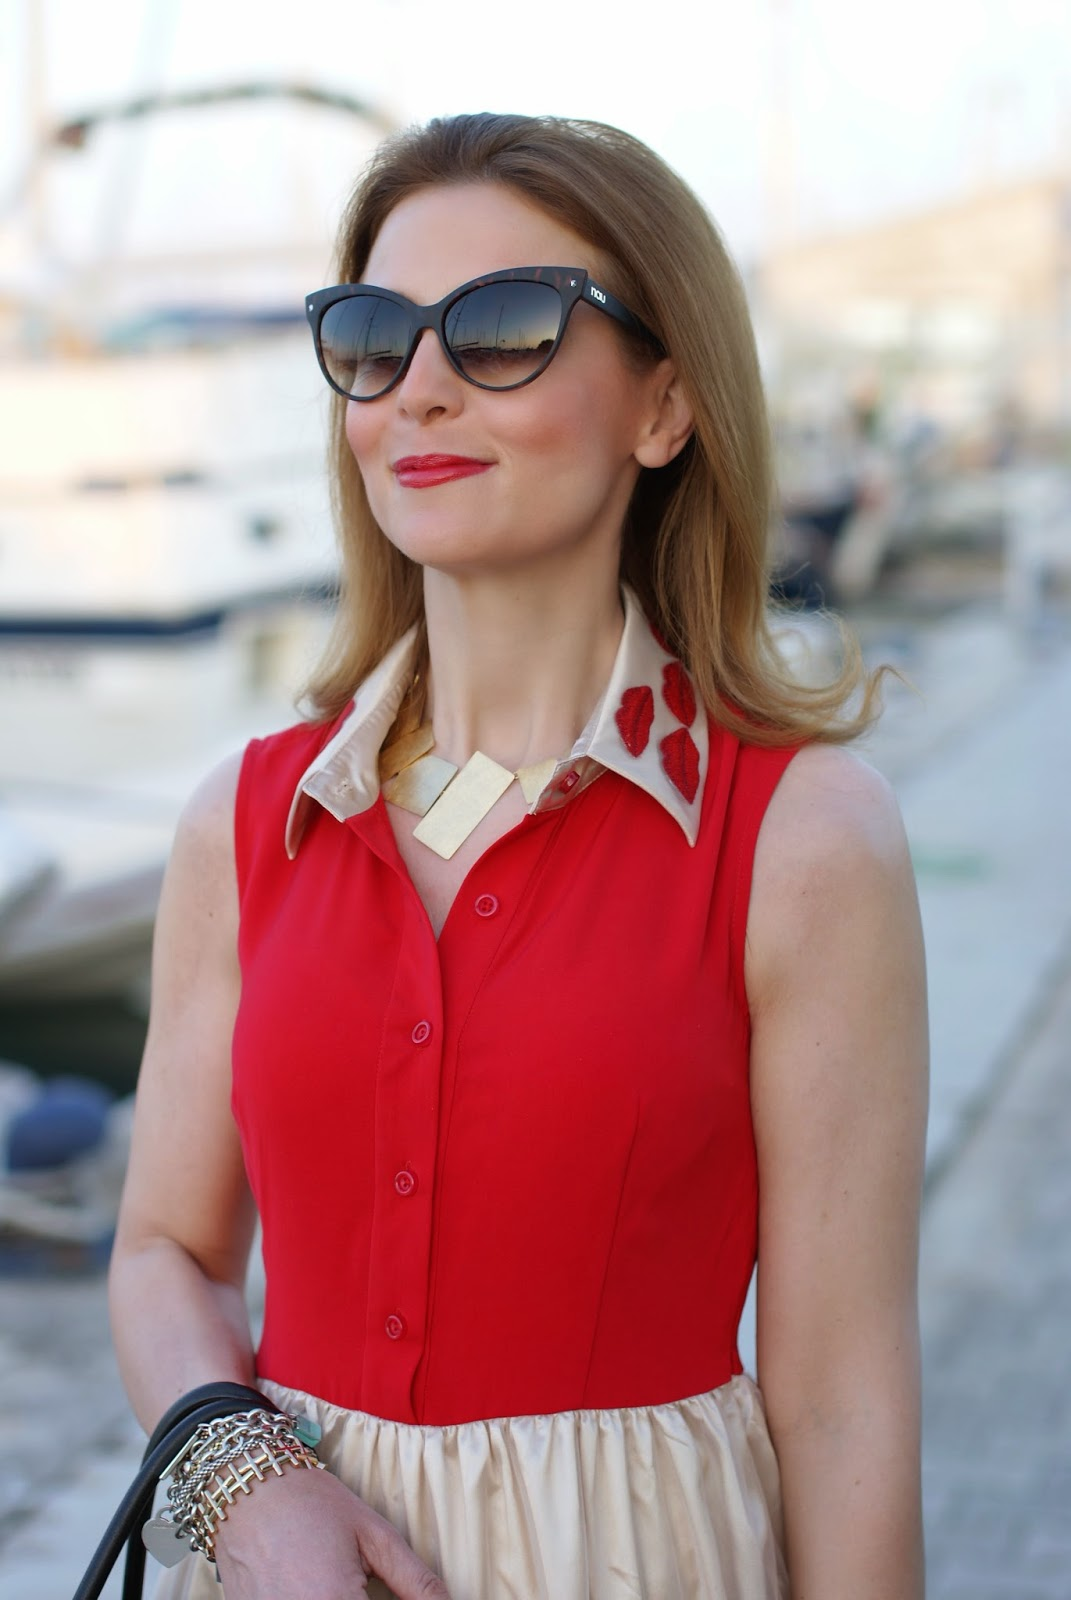 Vitti Ferria Contin necklace, NAU! sunglasses, red lips dress, MAC melba blush on face, Fashion and Cookies, fashion blogger